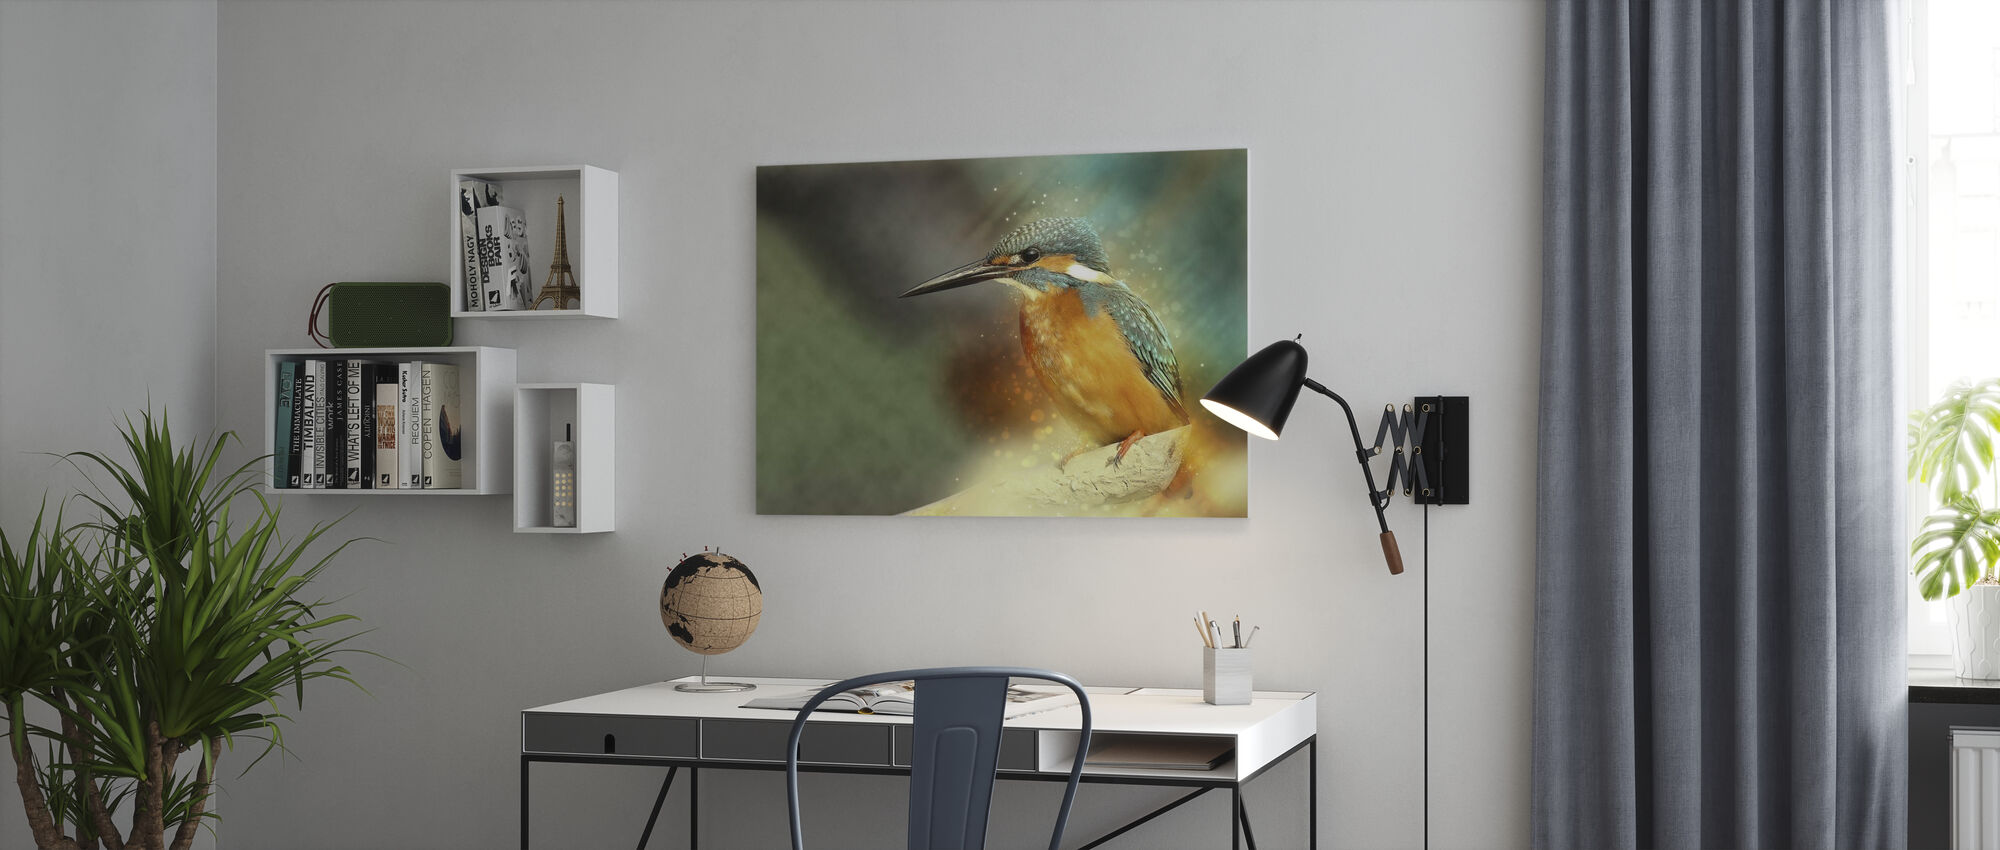 Perched Kingfisher - Canvas print - Office